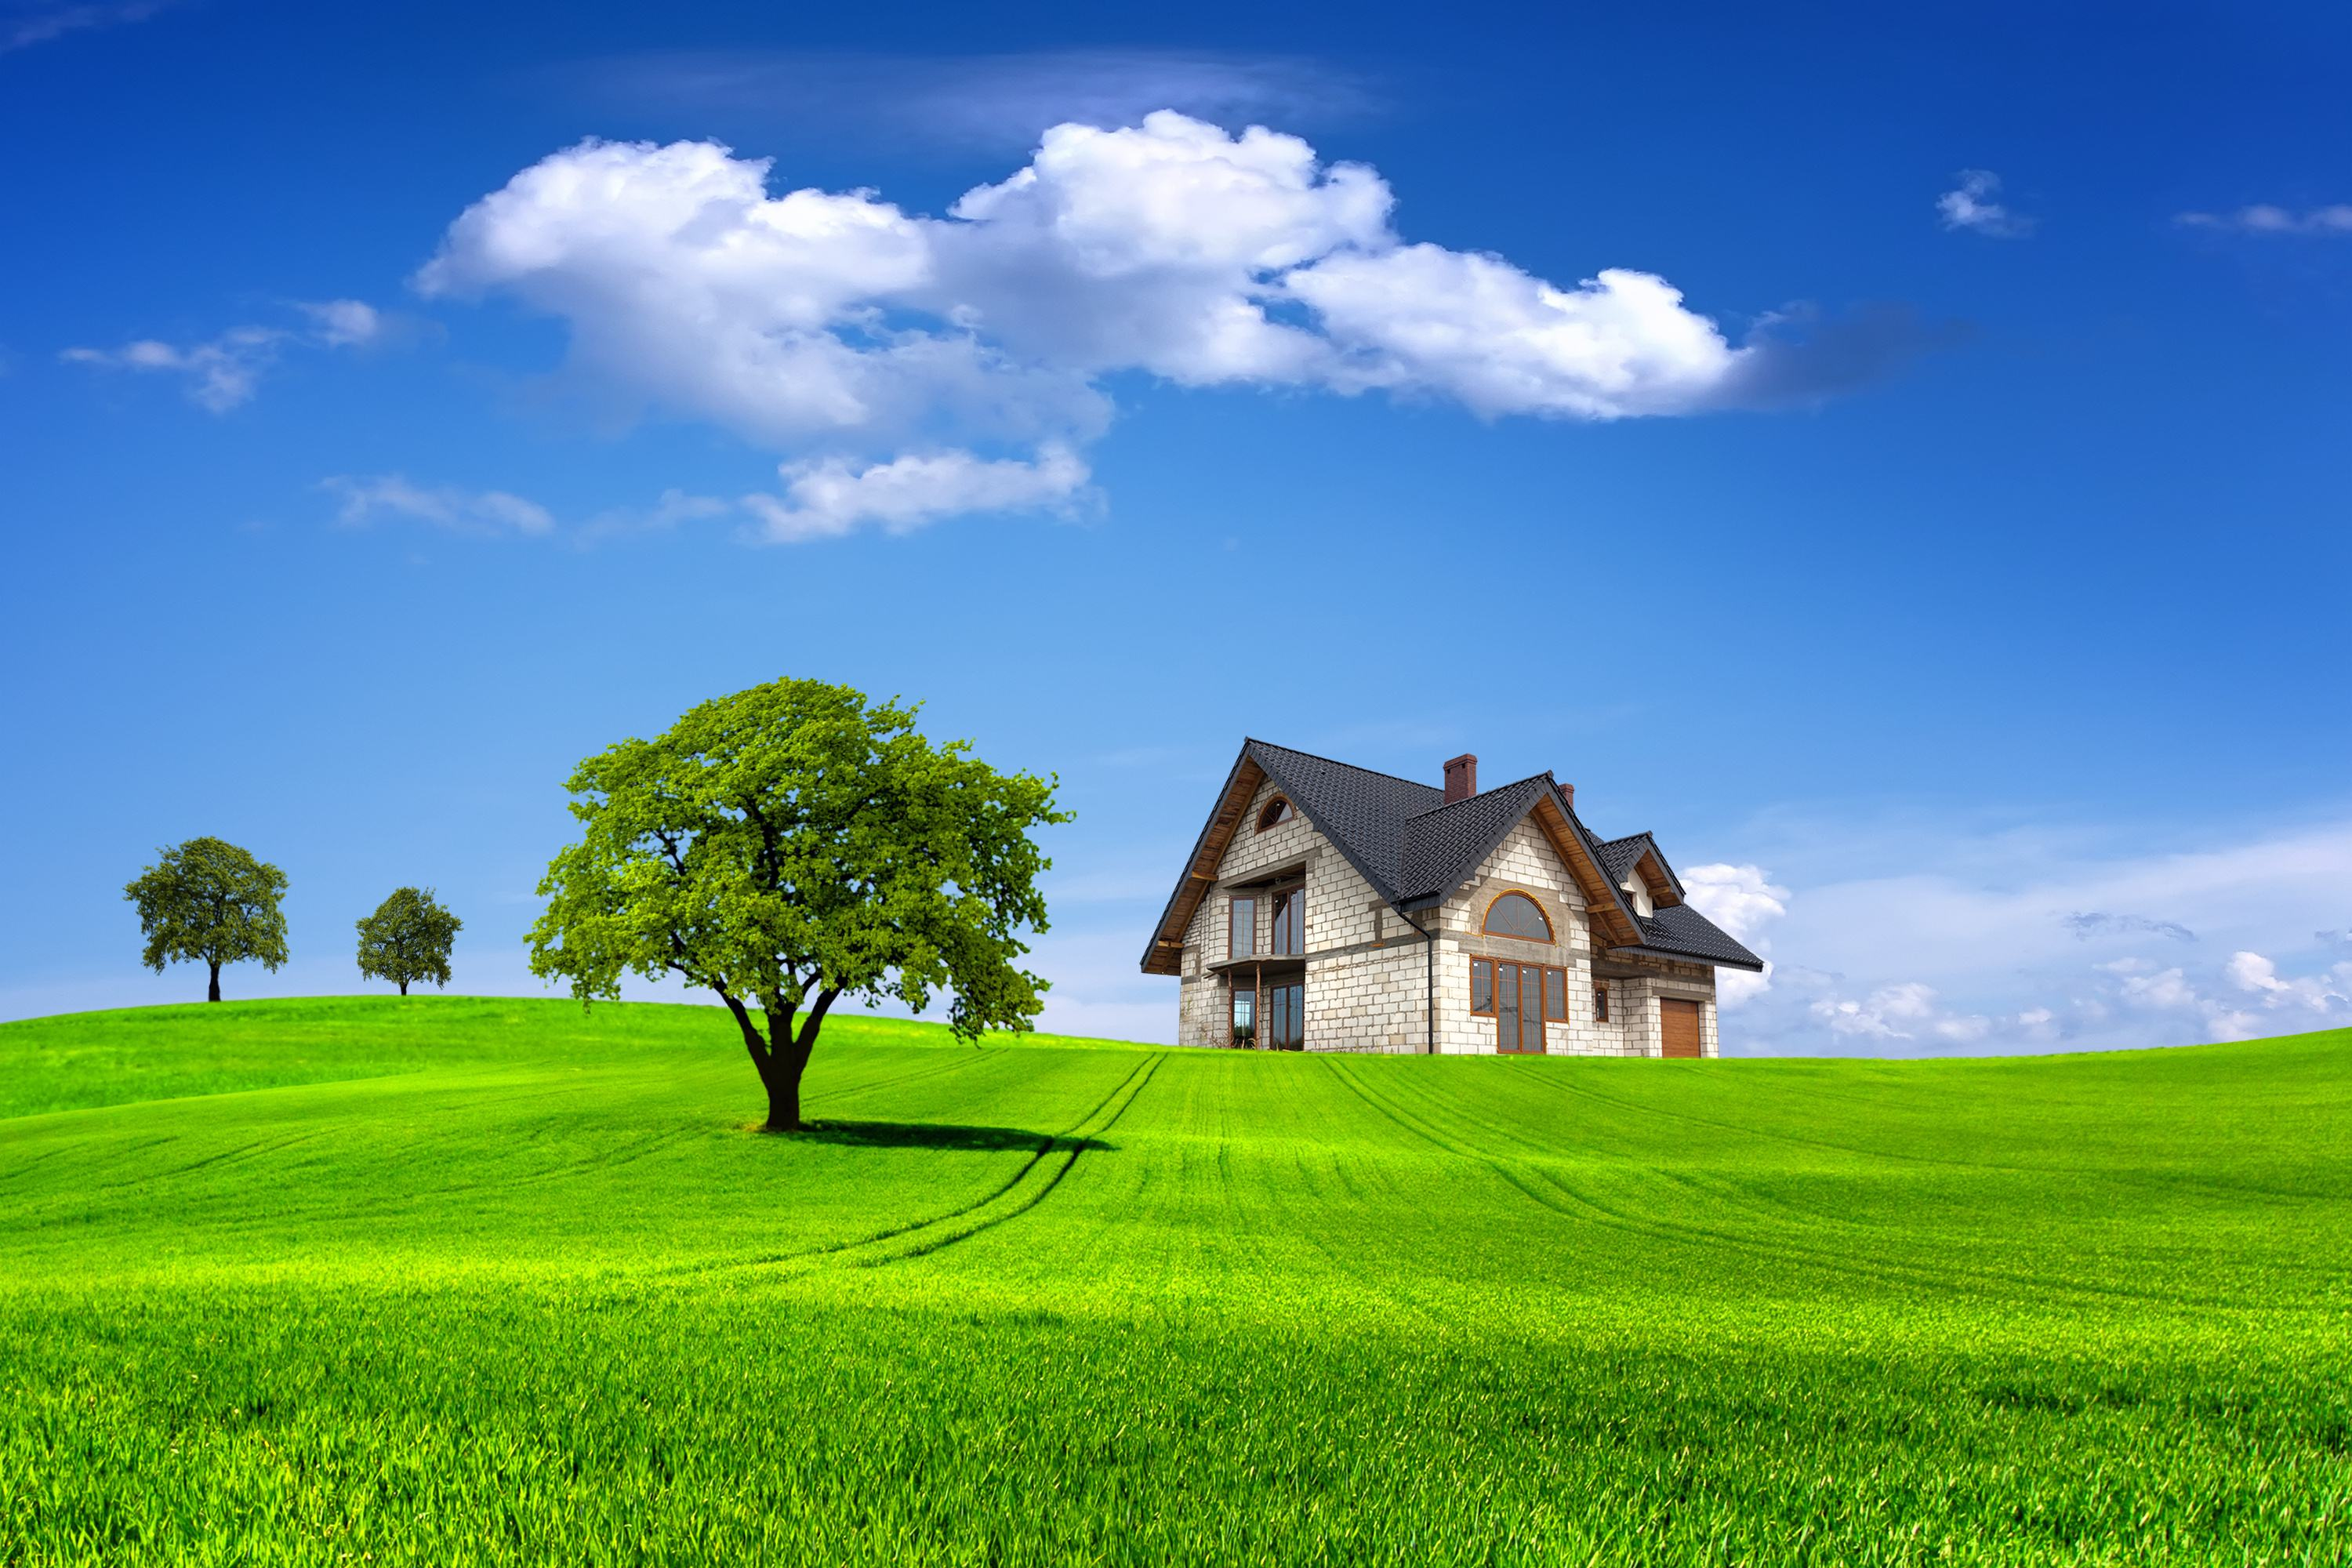 Home 3D Nature Wallpaper HD 2983 Wallpaper Cool Walldiskpapercom 3000x2000